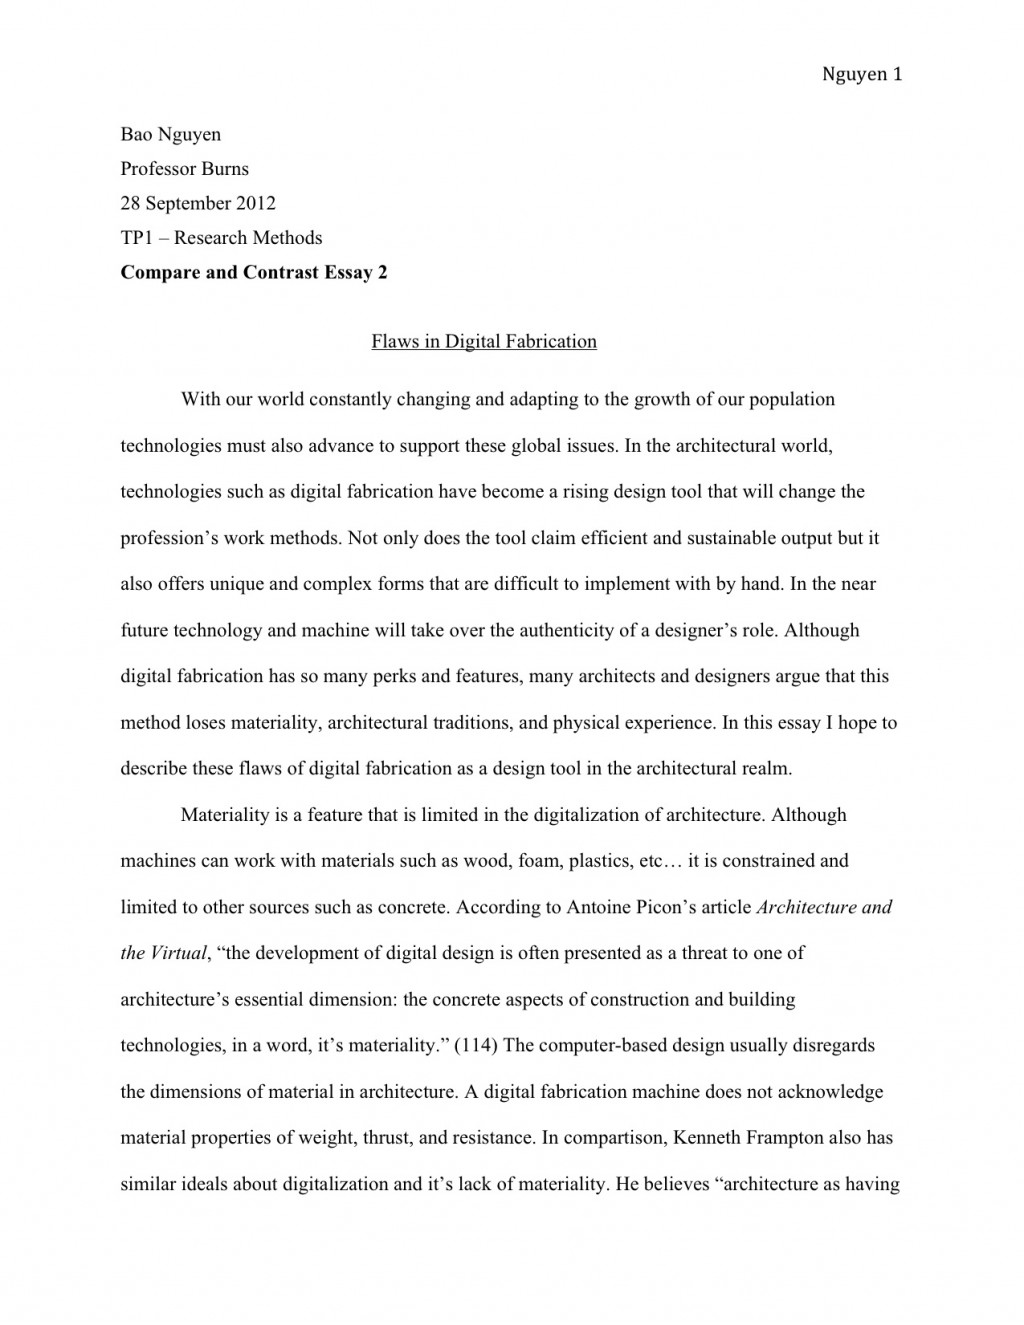 005 How To Write An Essay Example Tp1 3 Shocking English Fast Title In Mla Format Conclusion Large